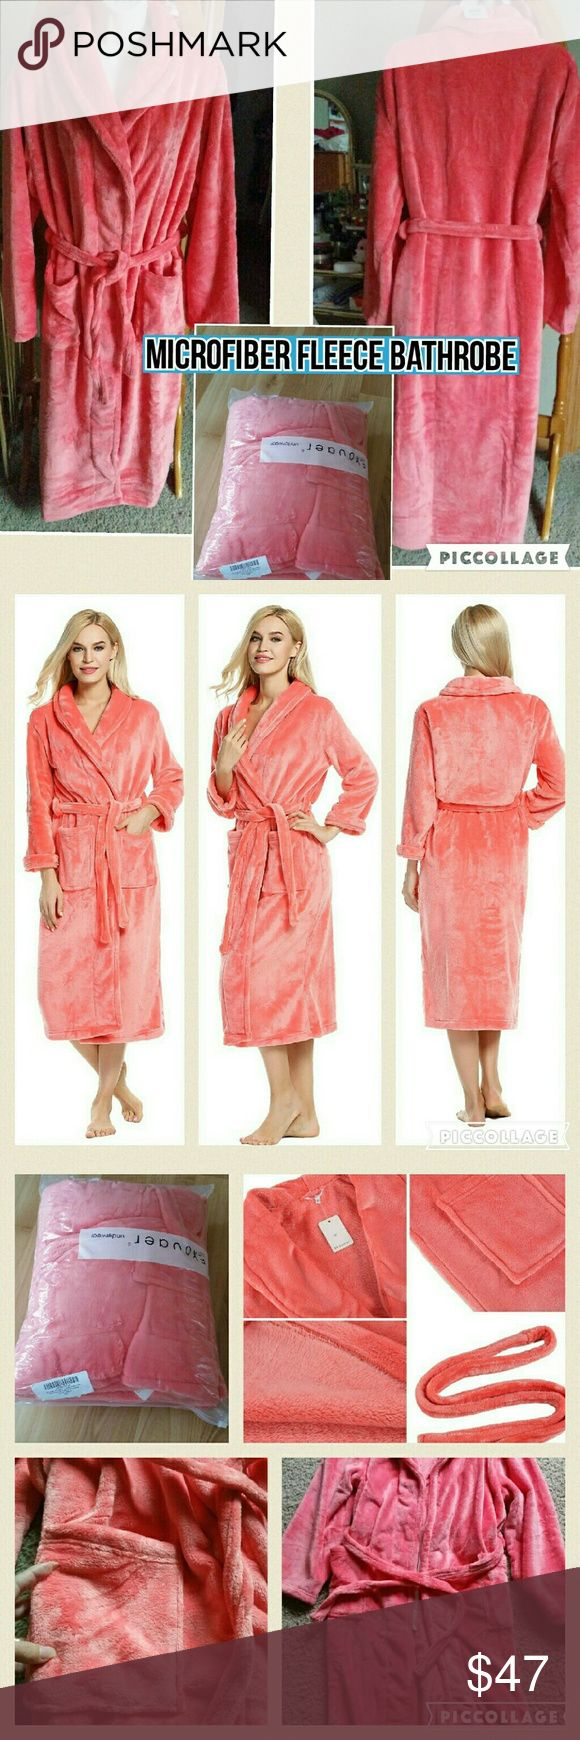 MICROFIBER FLEECE BATHROBE/FULL LENGTH BRAND NEW: ROBES KIMONO BATHROBE SUPER PLUSH MICROFIBER FLEECE LOUNGEWEAR-SUPER COZY.. CORAL M/L  Super plush 100% microfiber fleece bathrobe lounge Robe for Men and Women. Comfort fleece bathrobe features two large front pockets and a shawl collar give this robe it's cozy winter cabin feel. Double belt loops and tie help secure a perfect fit around your waist. Durable, soft plush lounge robe that is easy on the skin and will hold up through your daily…